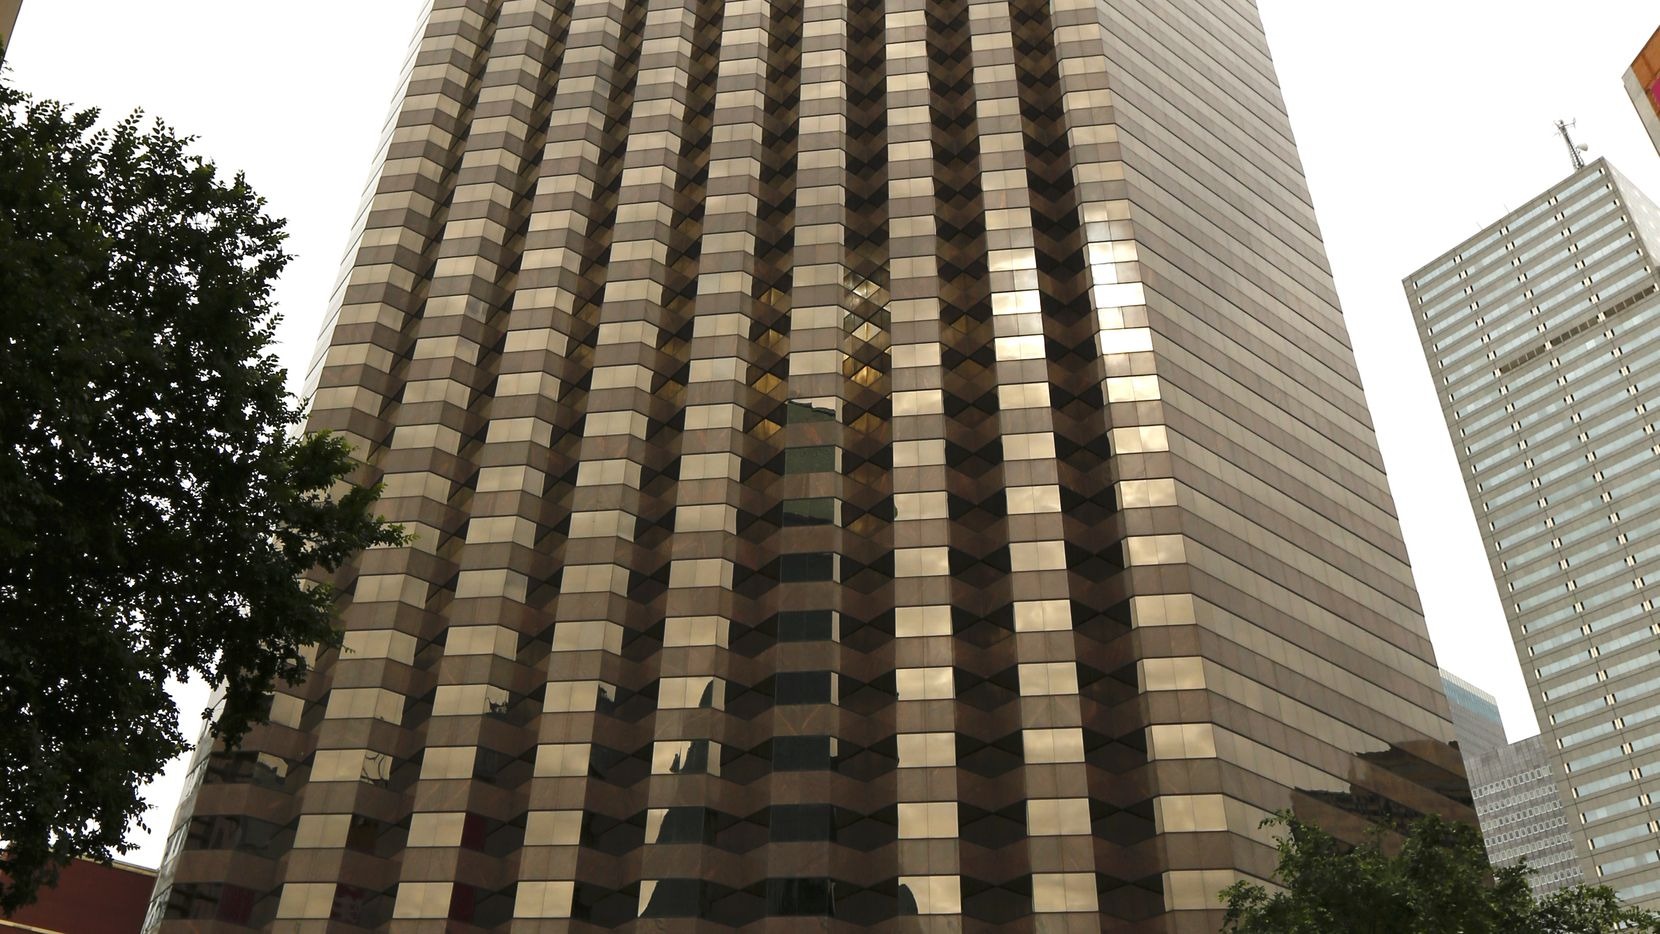 Acrosa Inc is moving its headquarters to Ross Tower in downtown Dallas.